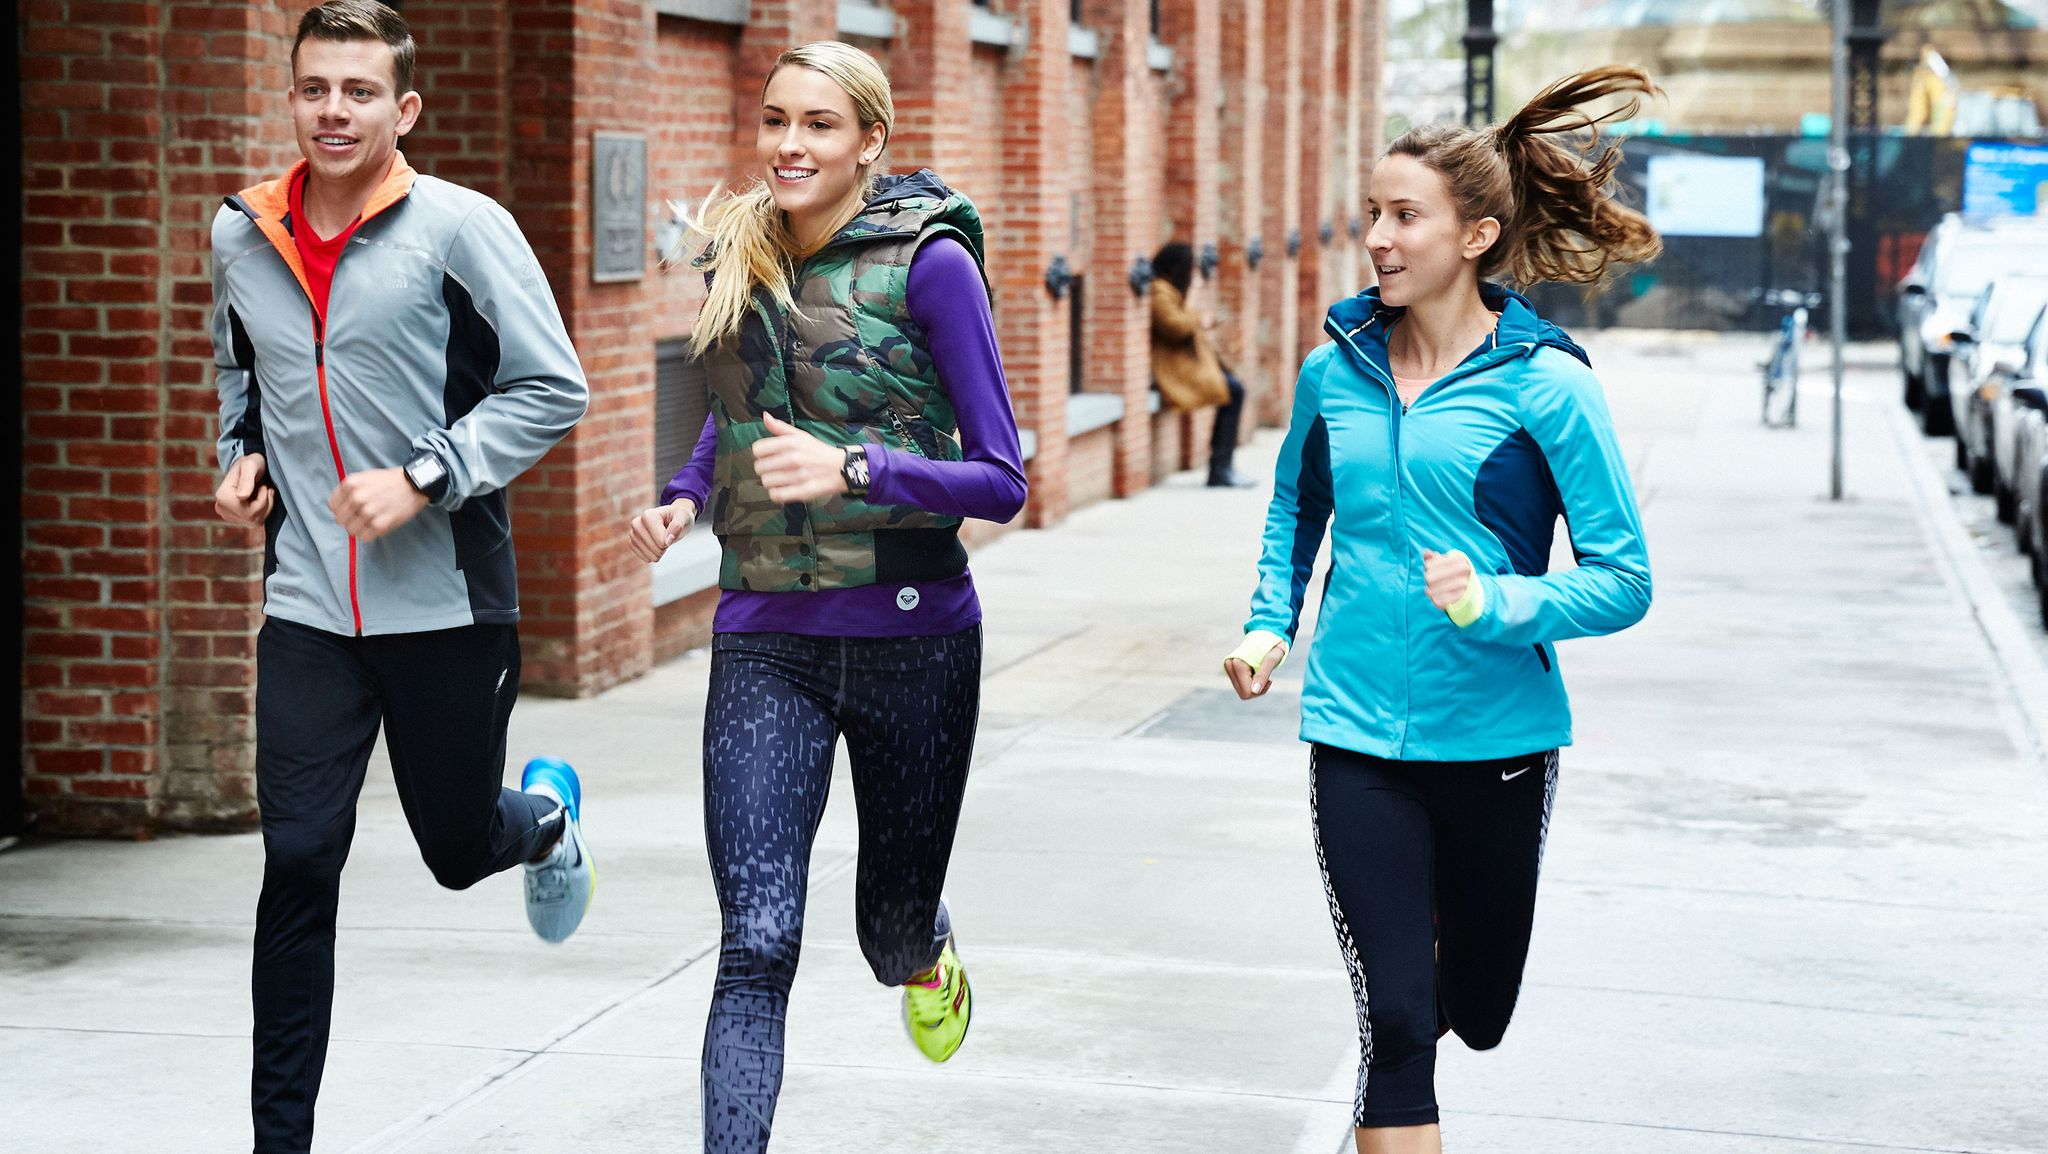 Get Inspired and Stay Motivated to Run